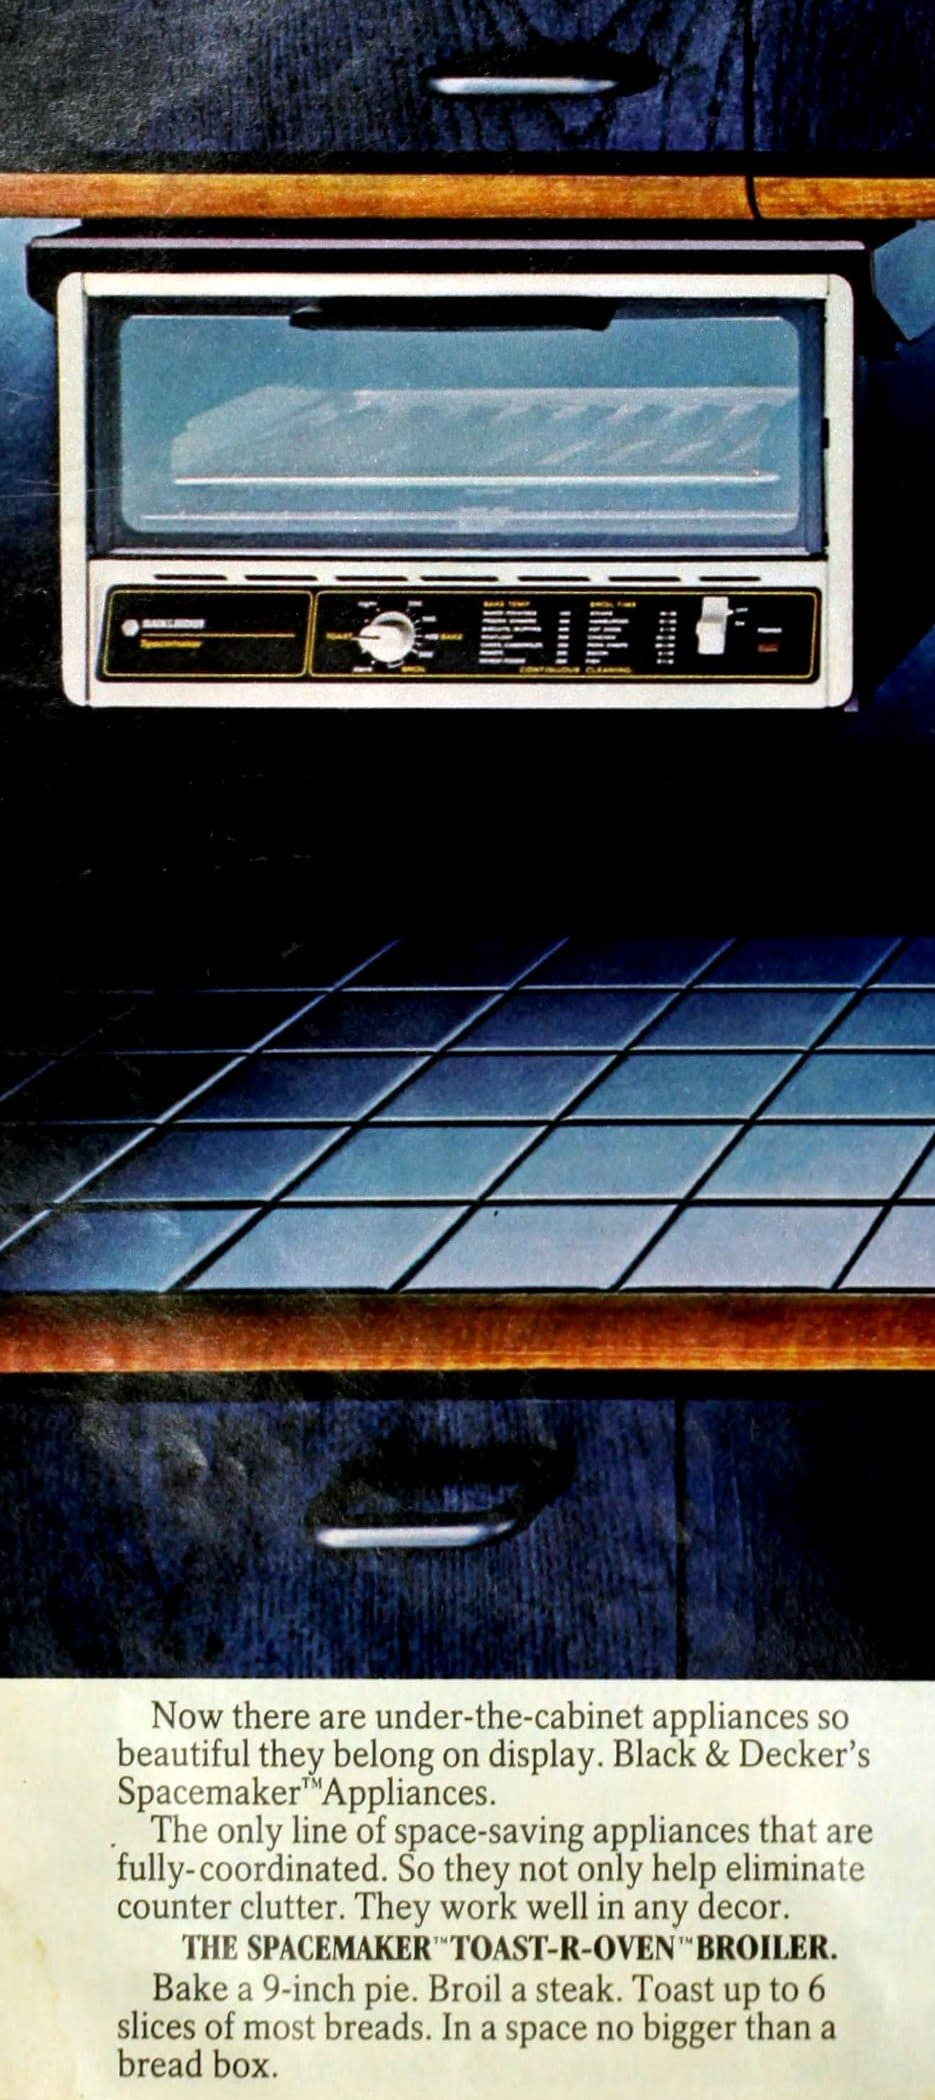 GE Spacemaker Toast-R-Oven retro toaster oven kitchen appliance (1985)